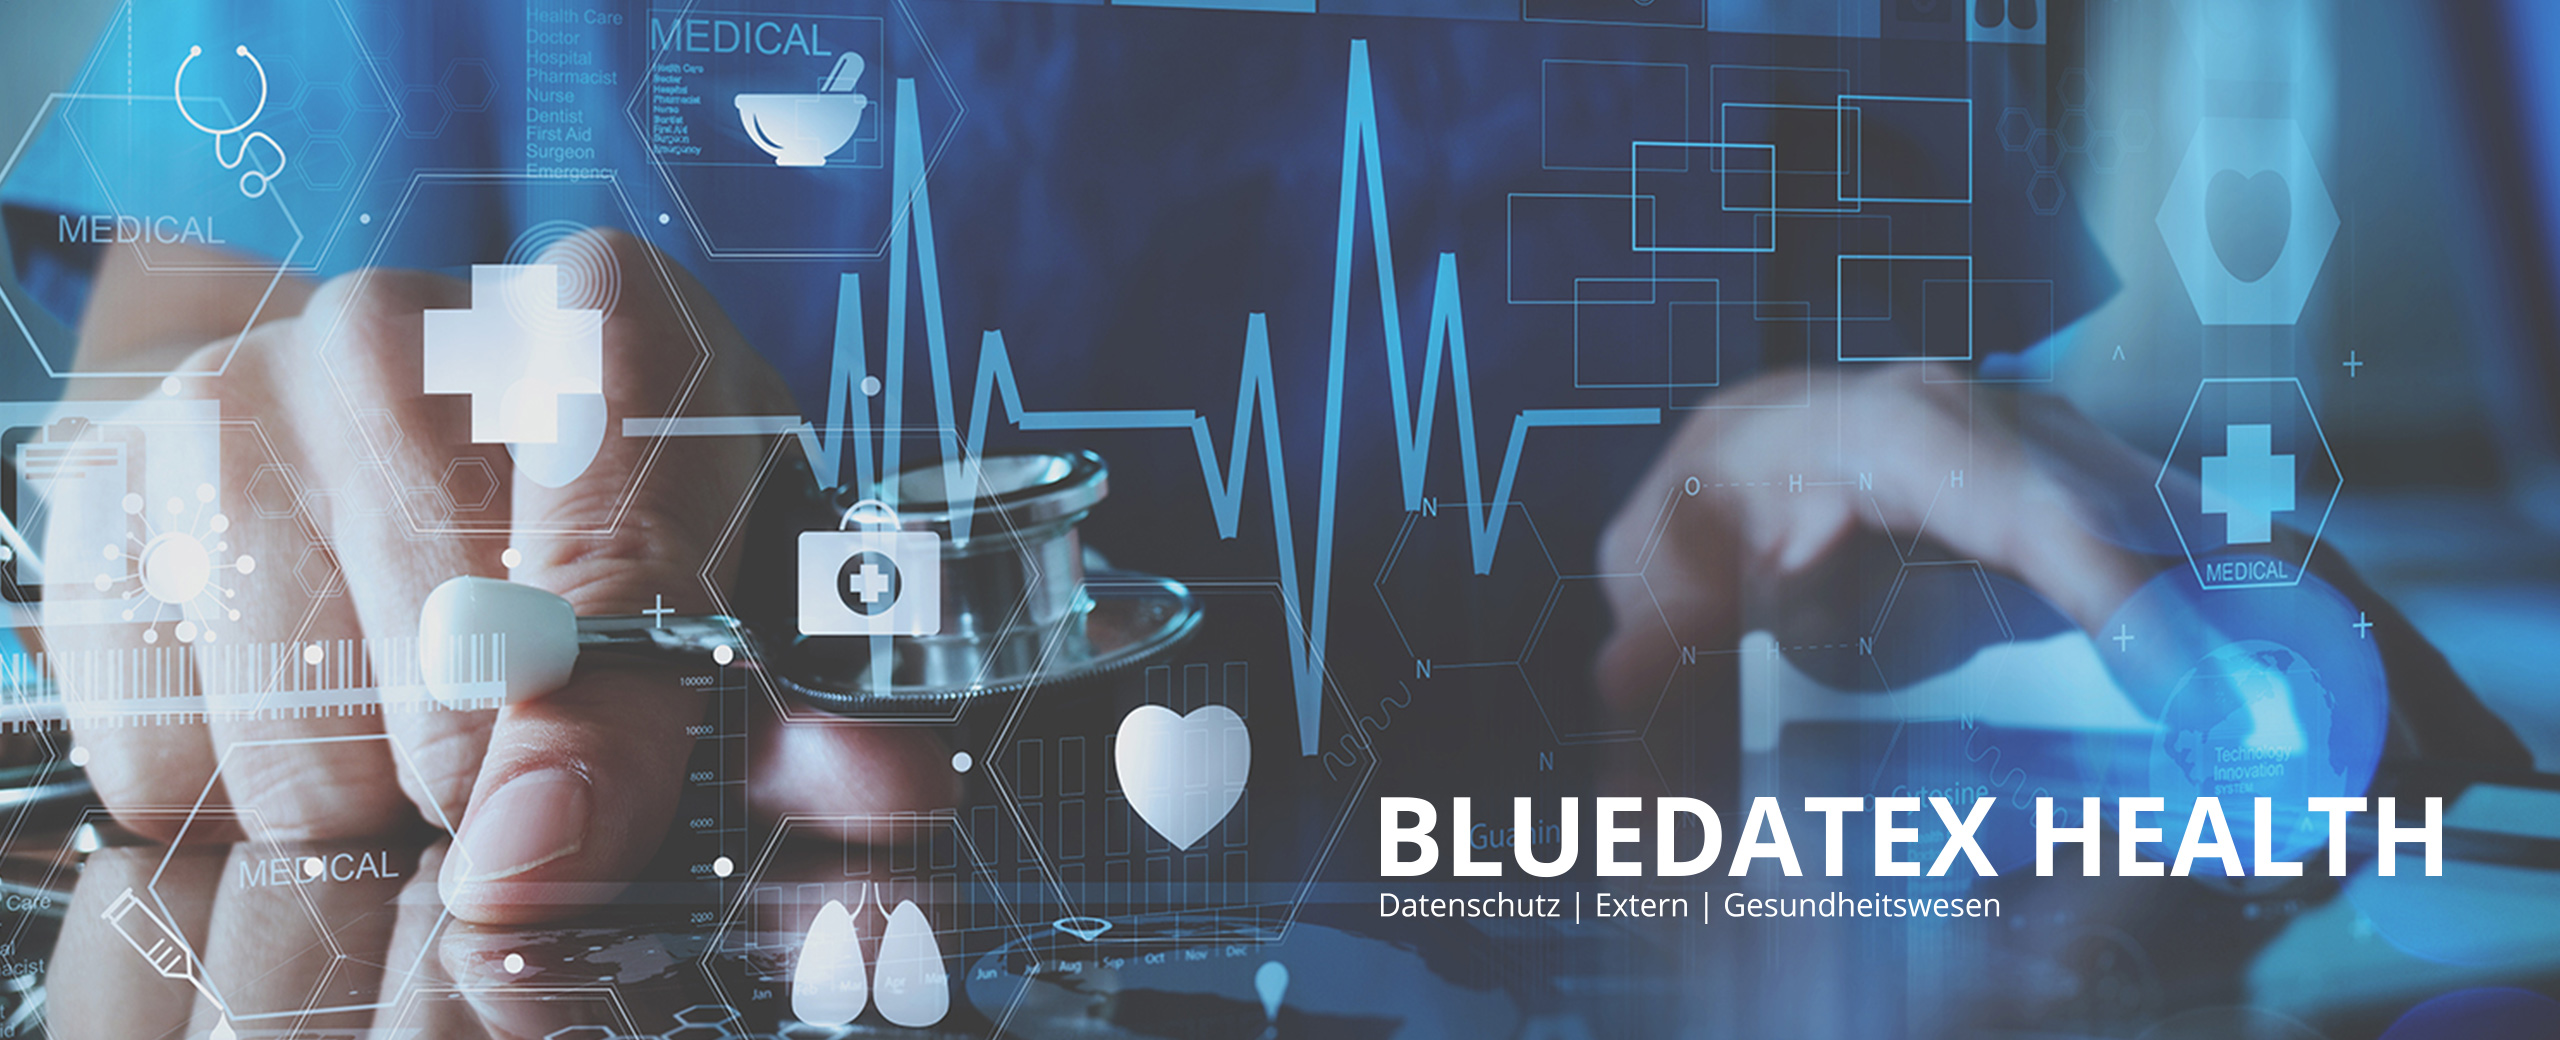 Bluedatex Health Projekt